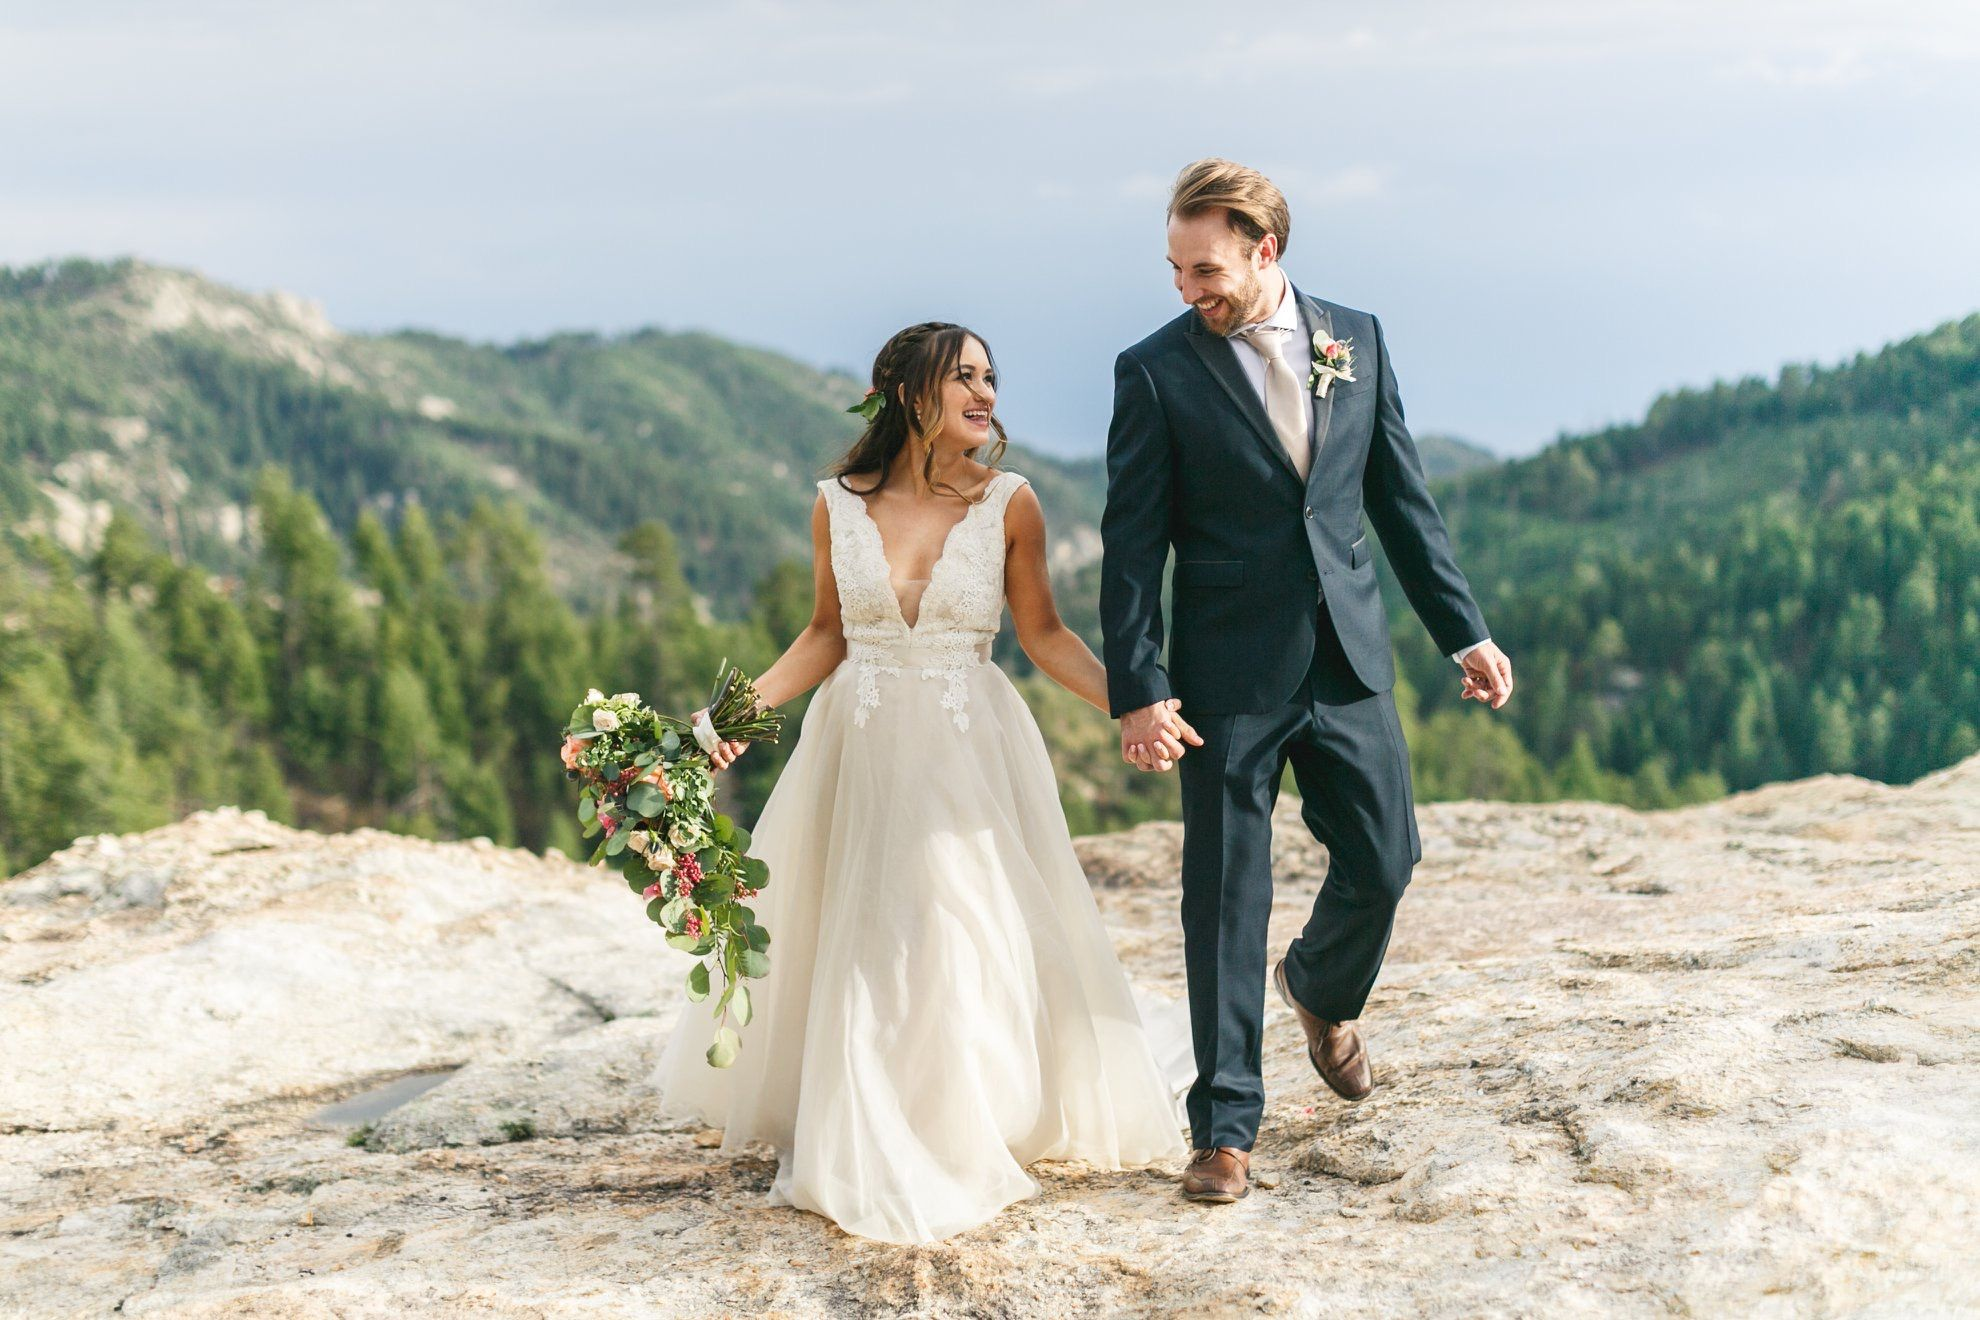 1c8f725cdb920 Tucson Mountain Wedding - Tara Keely 2500 - Romantic Wedding Gown ...